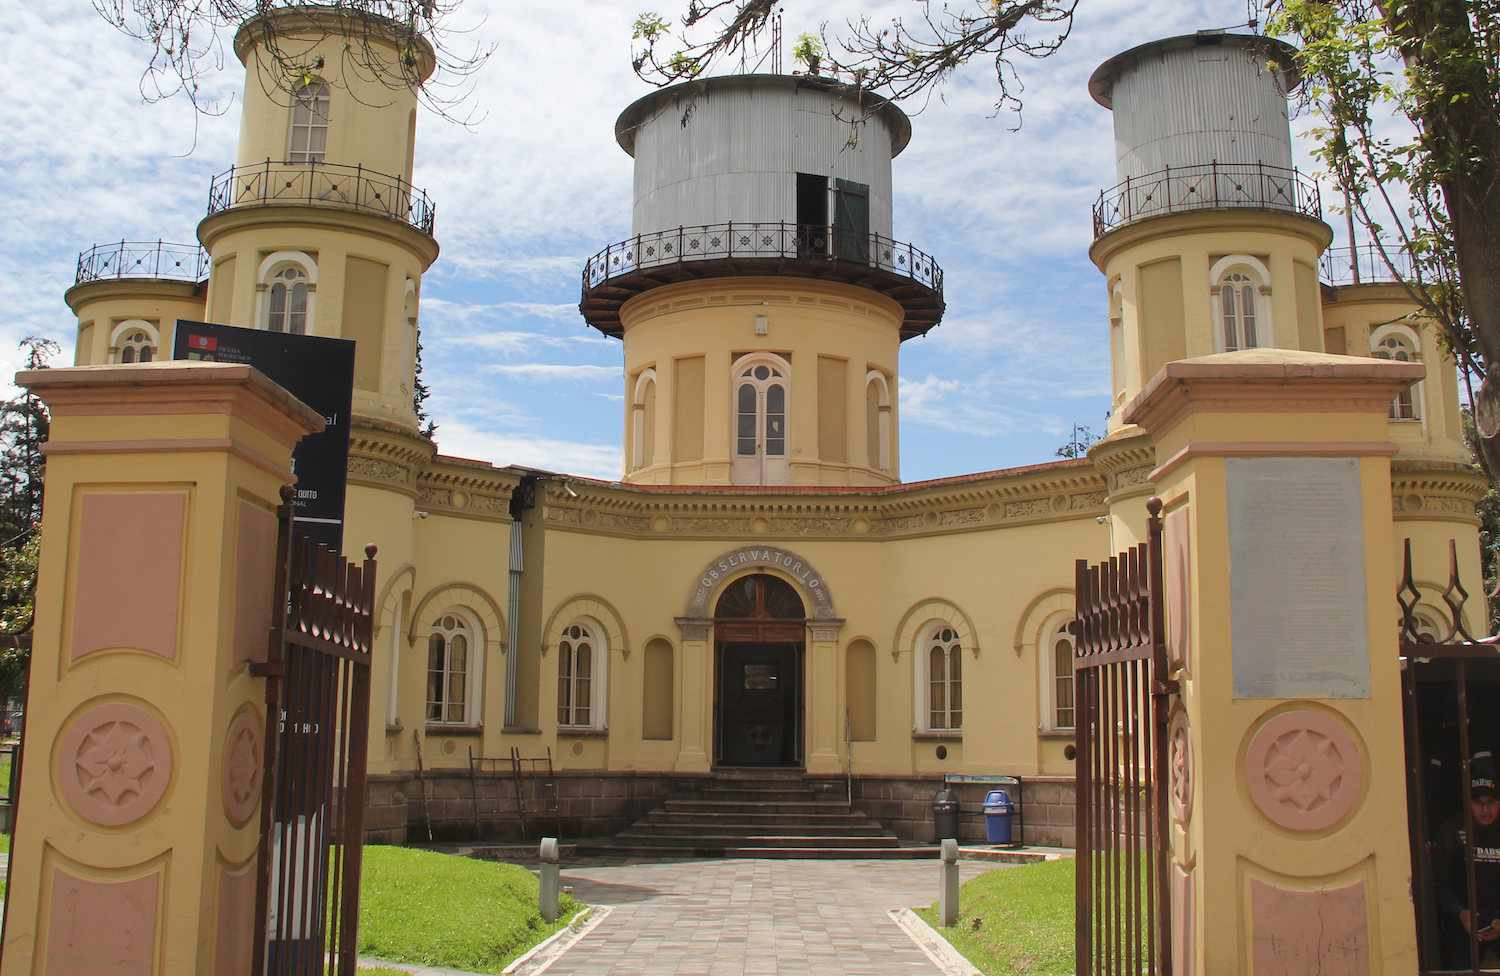 The three towers of Quito Astronomical Observatory in Ecuador